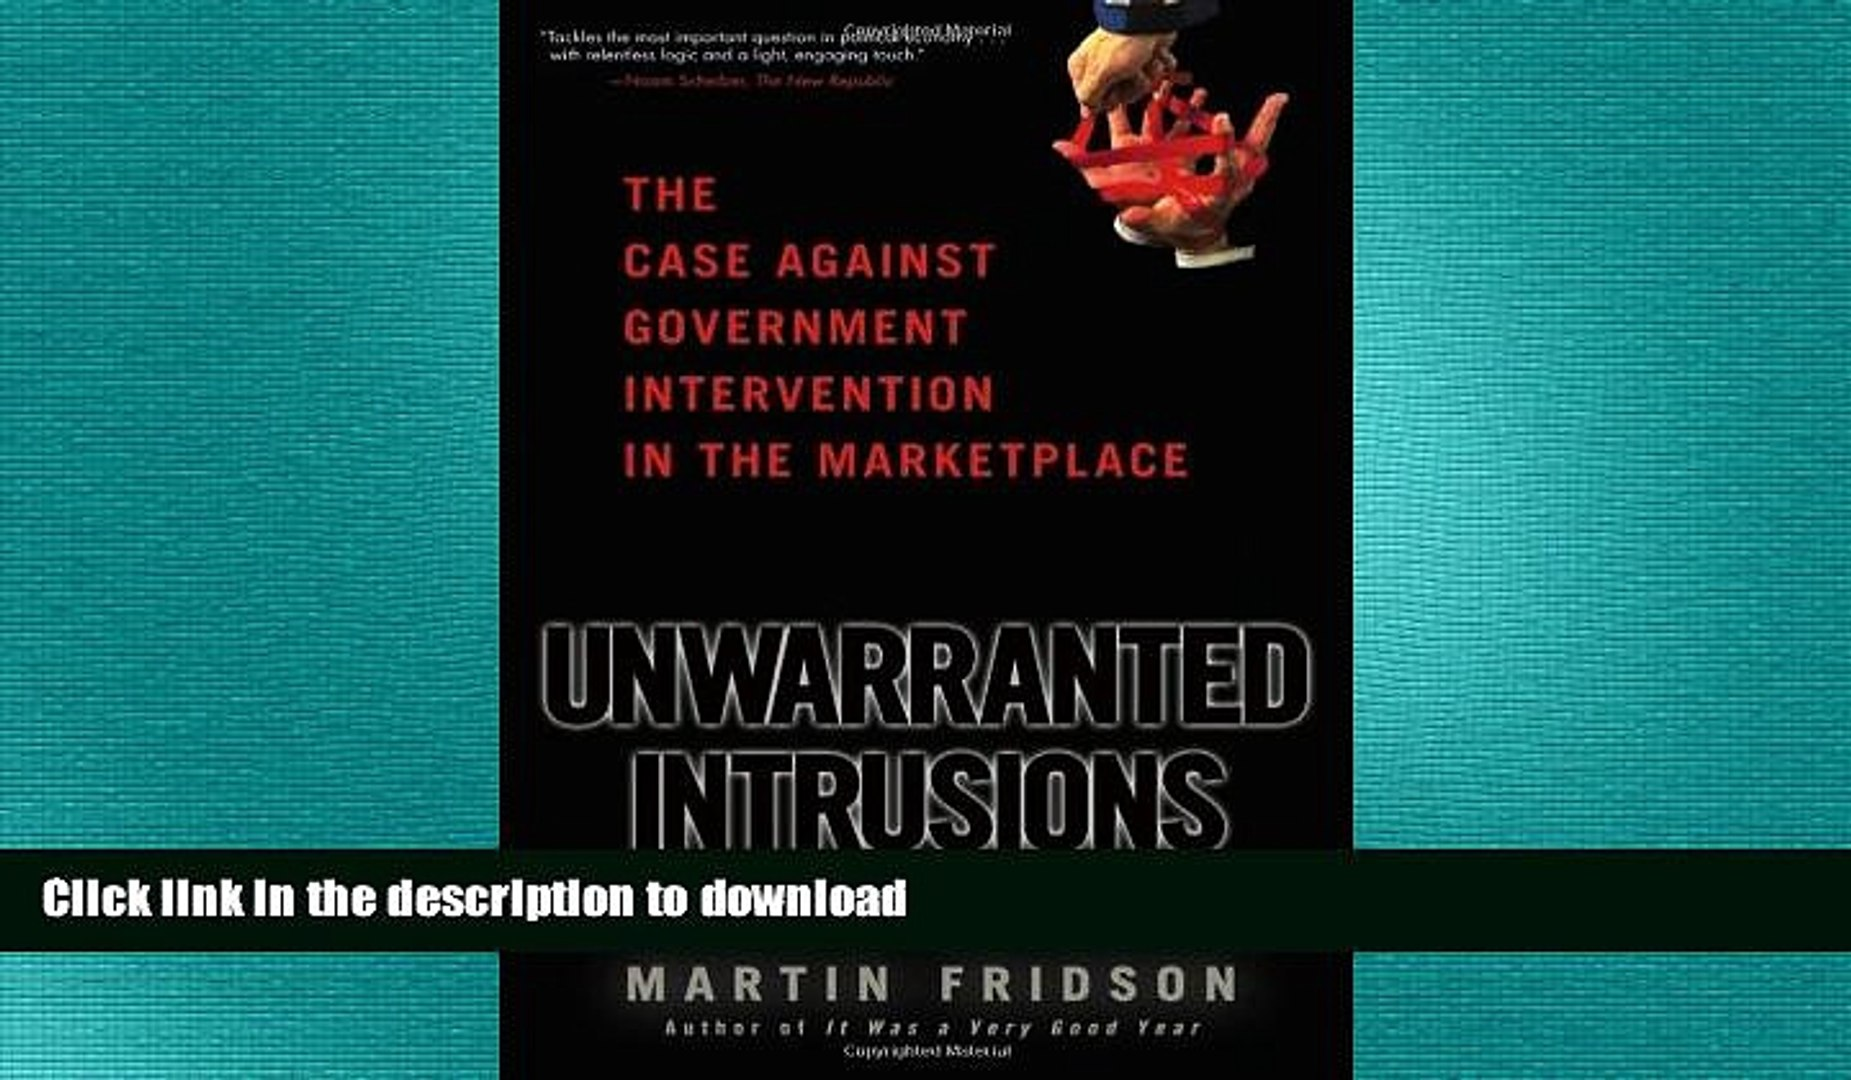 Unwarranted Intrusions: The Case Against Government Intervention in the Marketplace